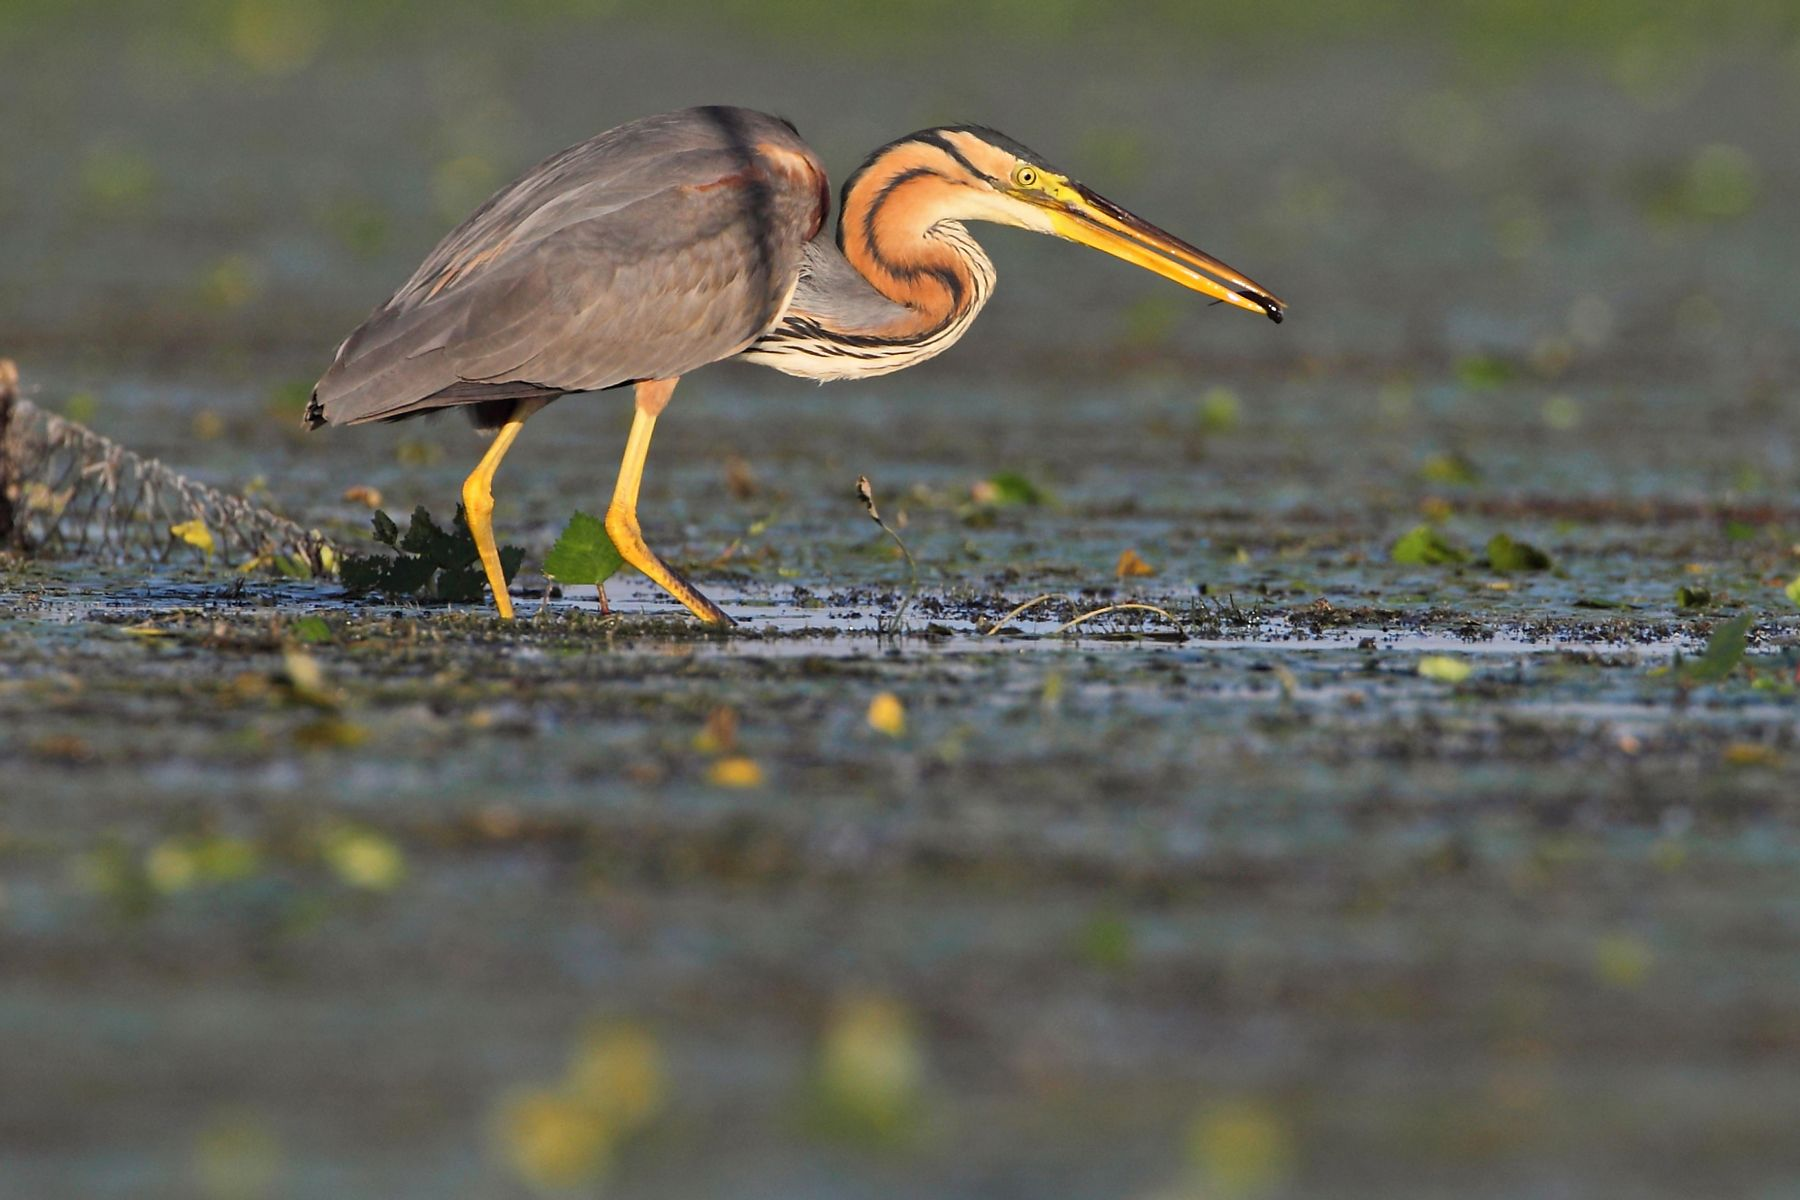 A Purple Heron searches for prey in the late afternoon